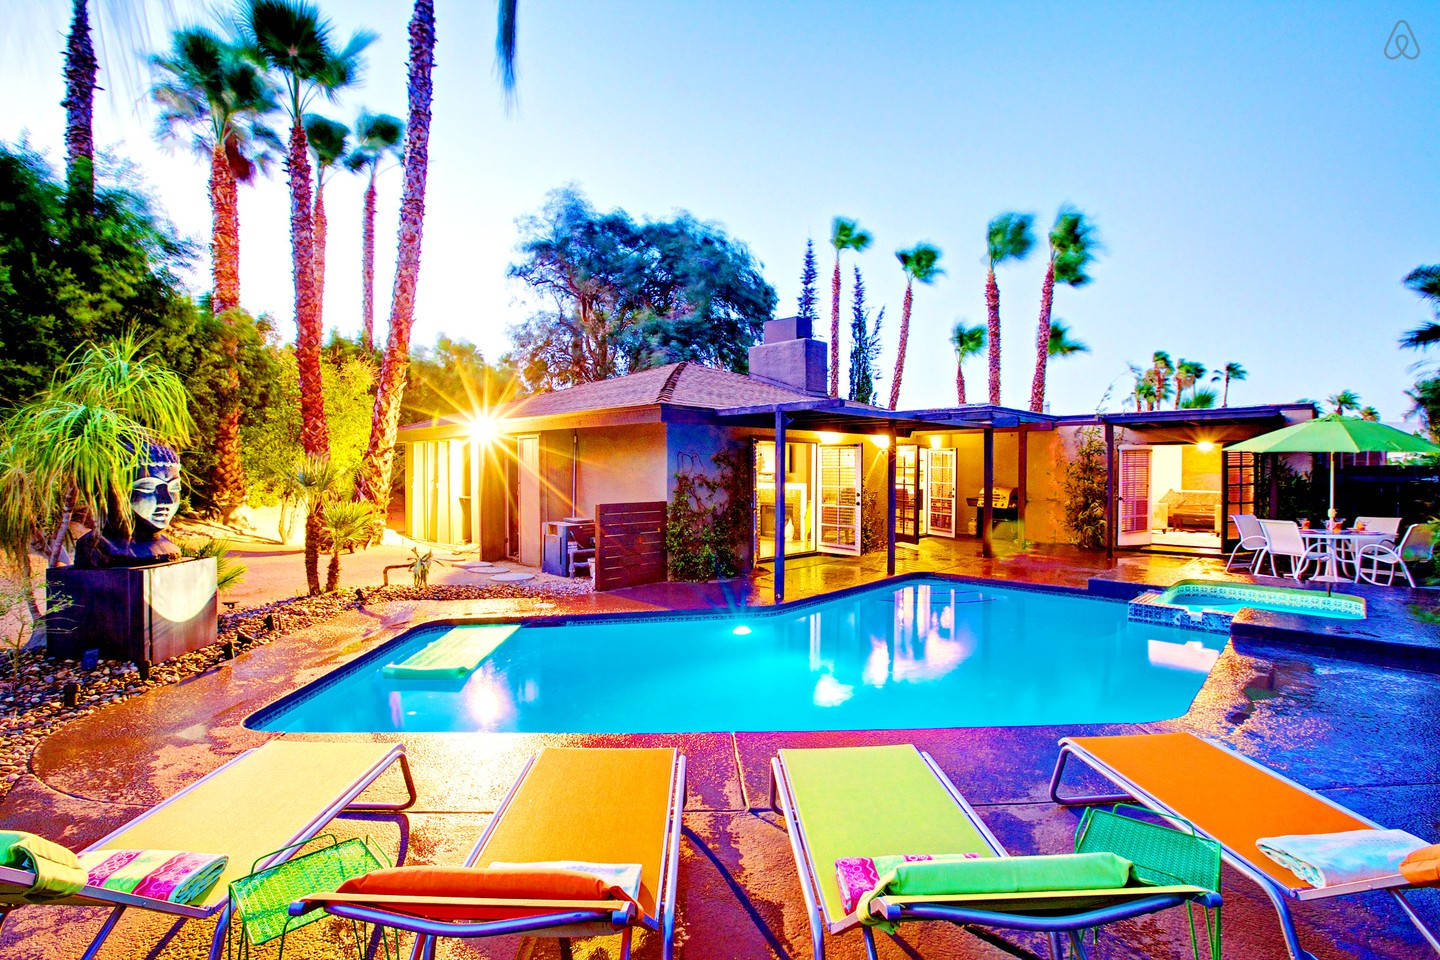 Do rent a fab house in palm springs via airbnb where you and your closest gal pals can get cozy and lounge by the pool all weekend